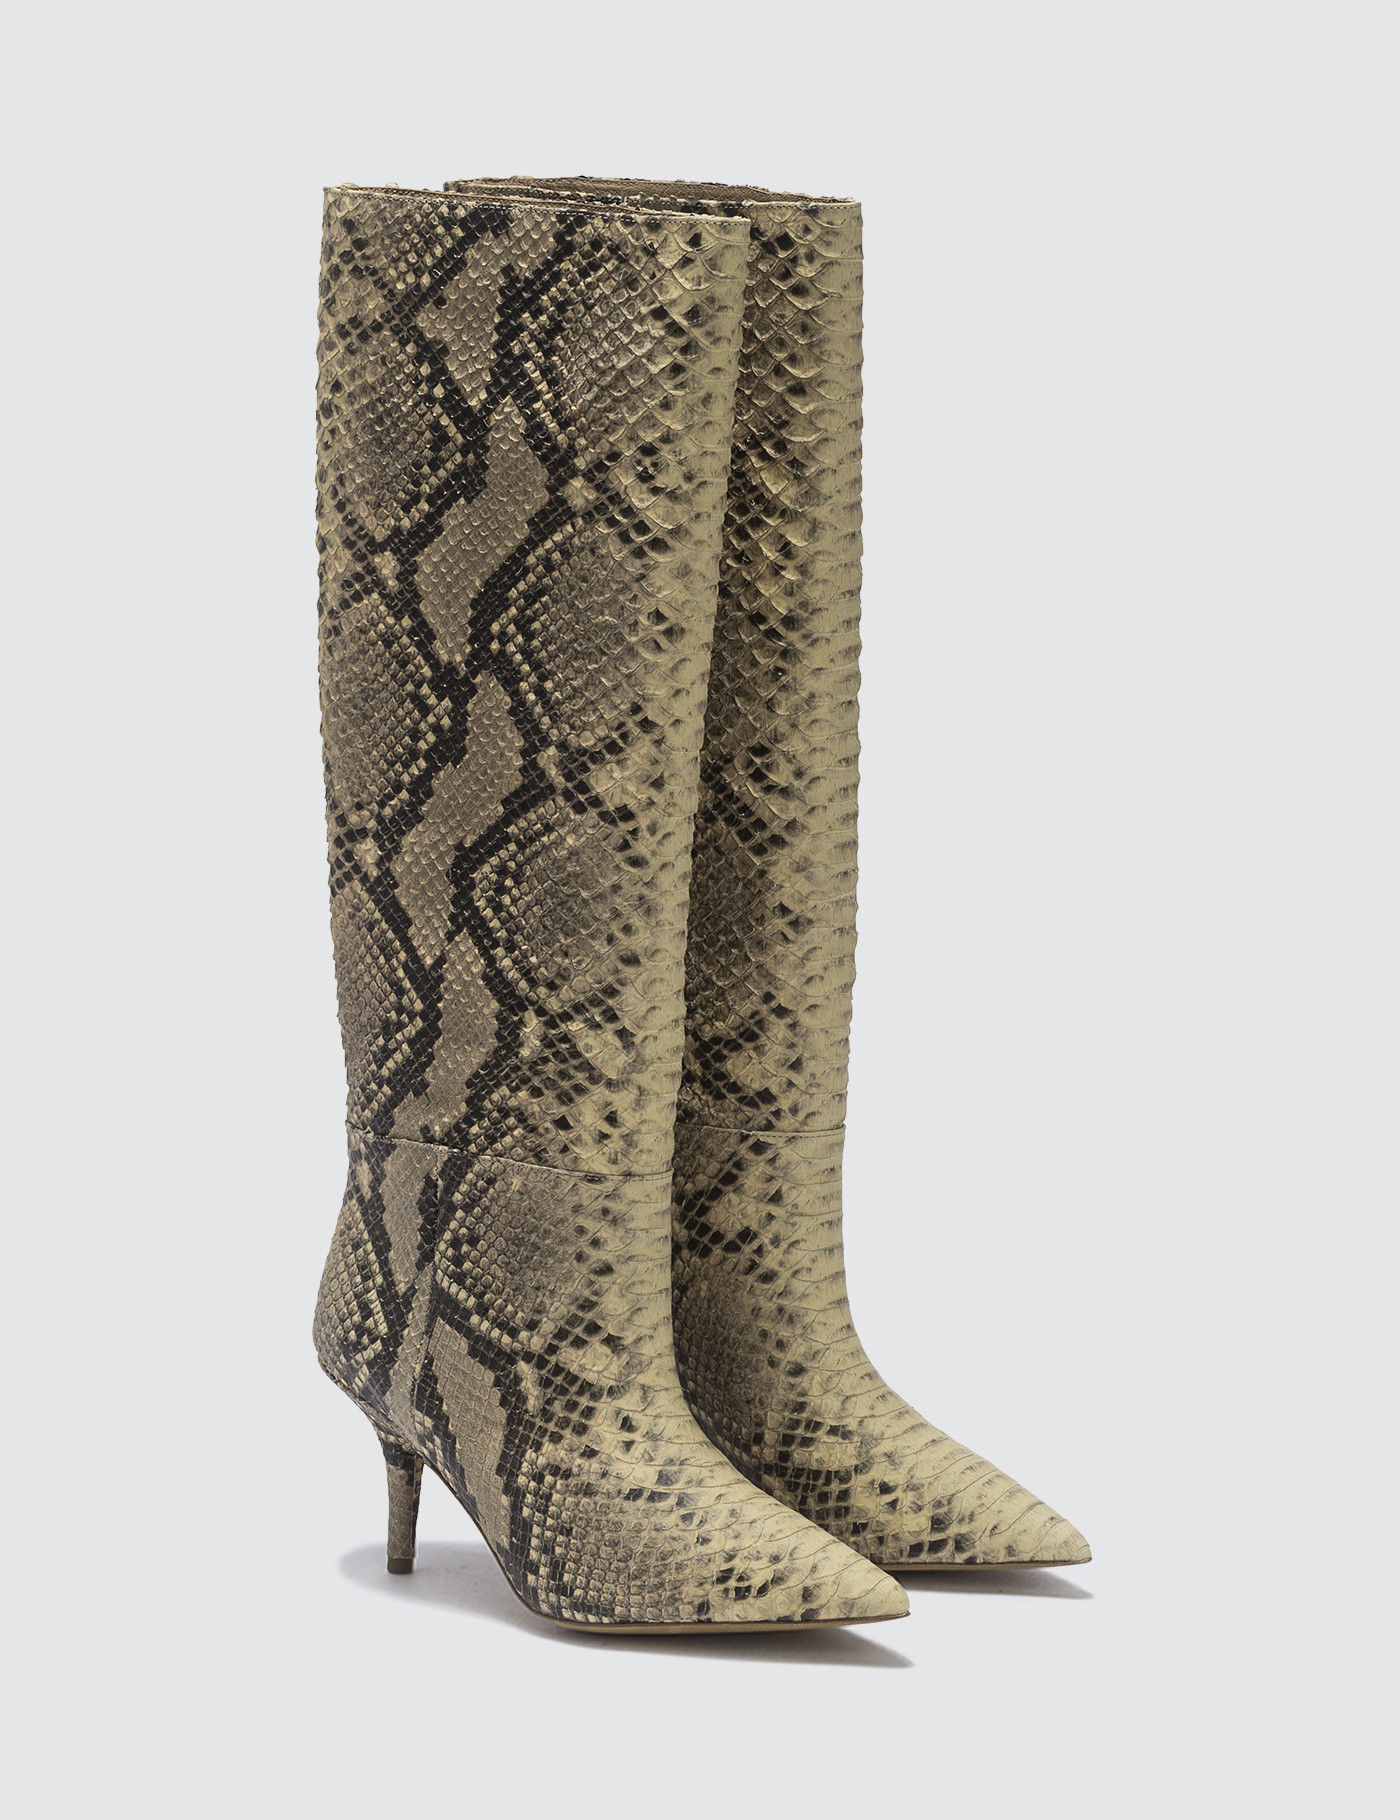 7928ce52a5bab Buy Original Yeezy Knee High Boot In Fake Python 70mm Heel at ...